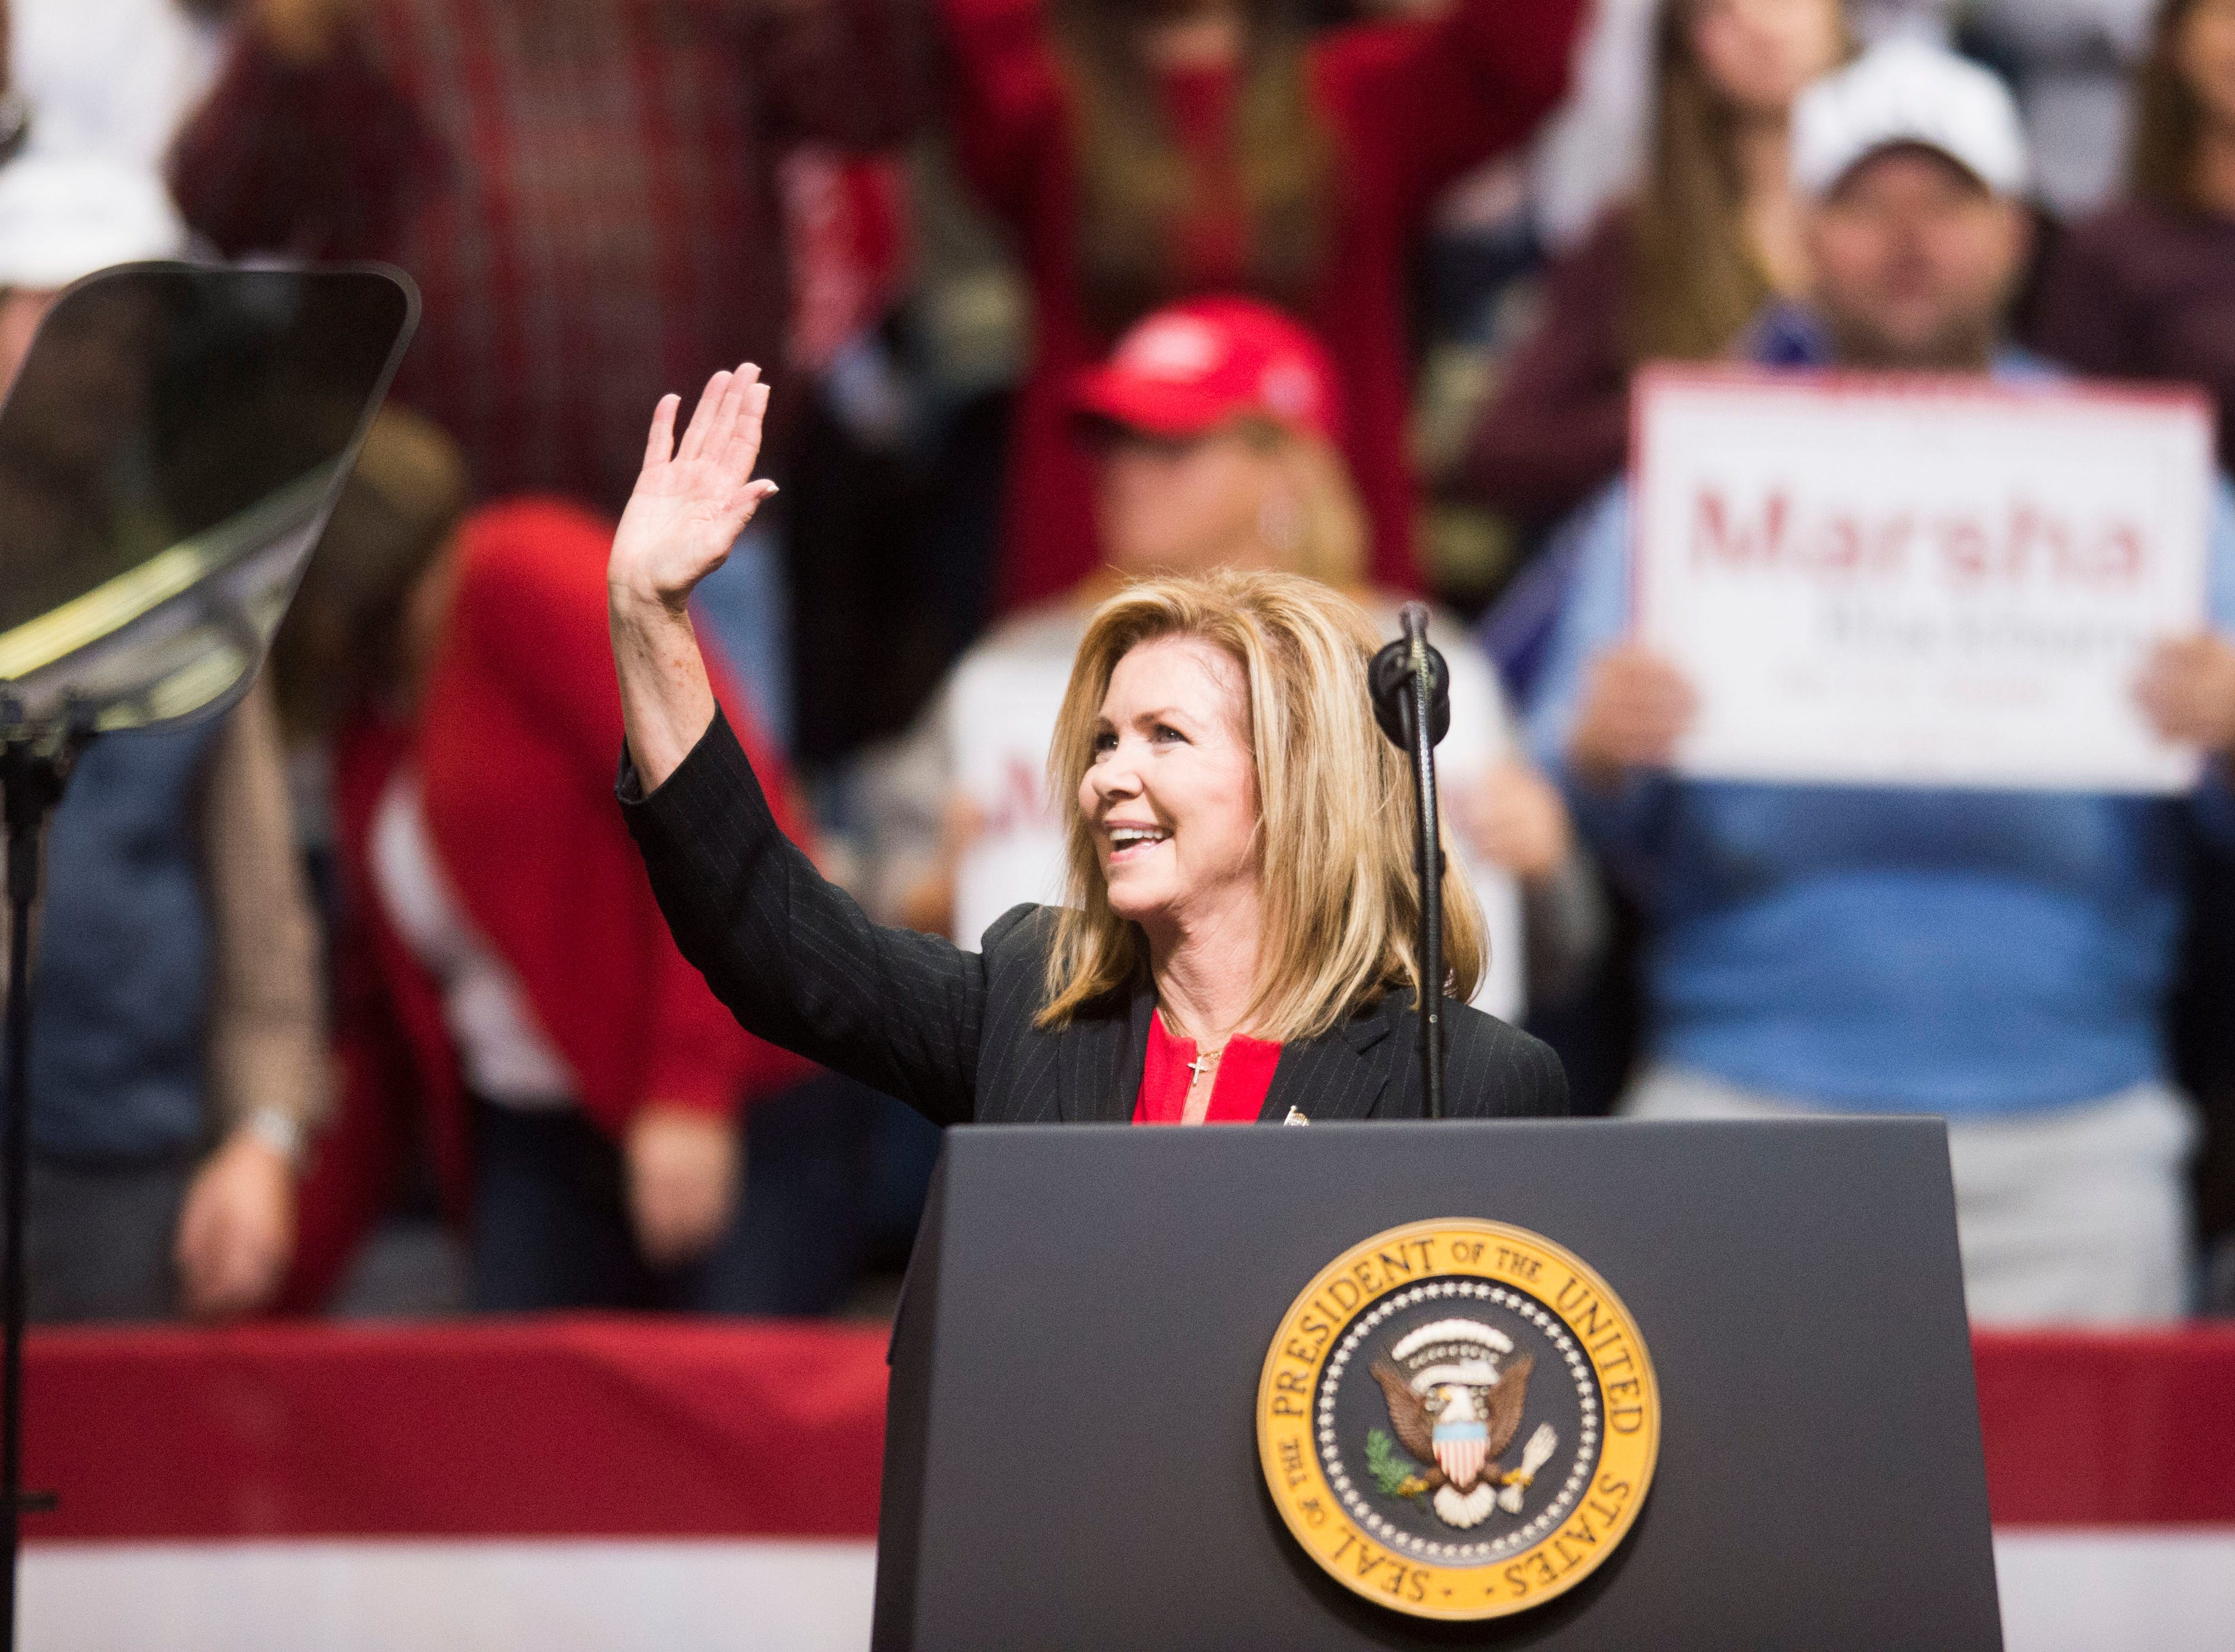 U.S. Rep. Marsha Blackburn speaks during a Donald Trump rally in support of her for the U.S. Senate at McKenzie Arena in Chattanooga, Sunday, Nov. 4, 2018.